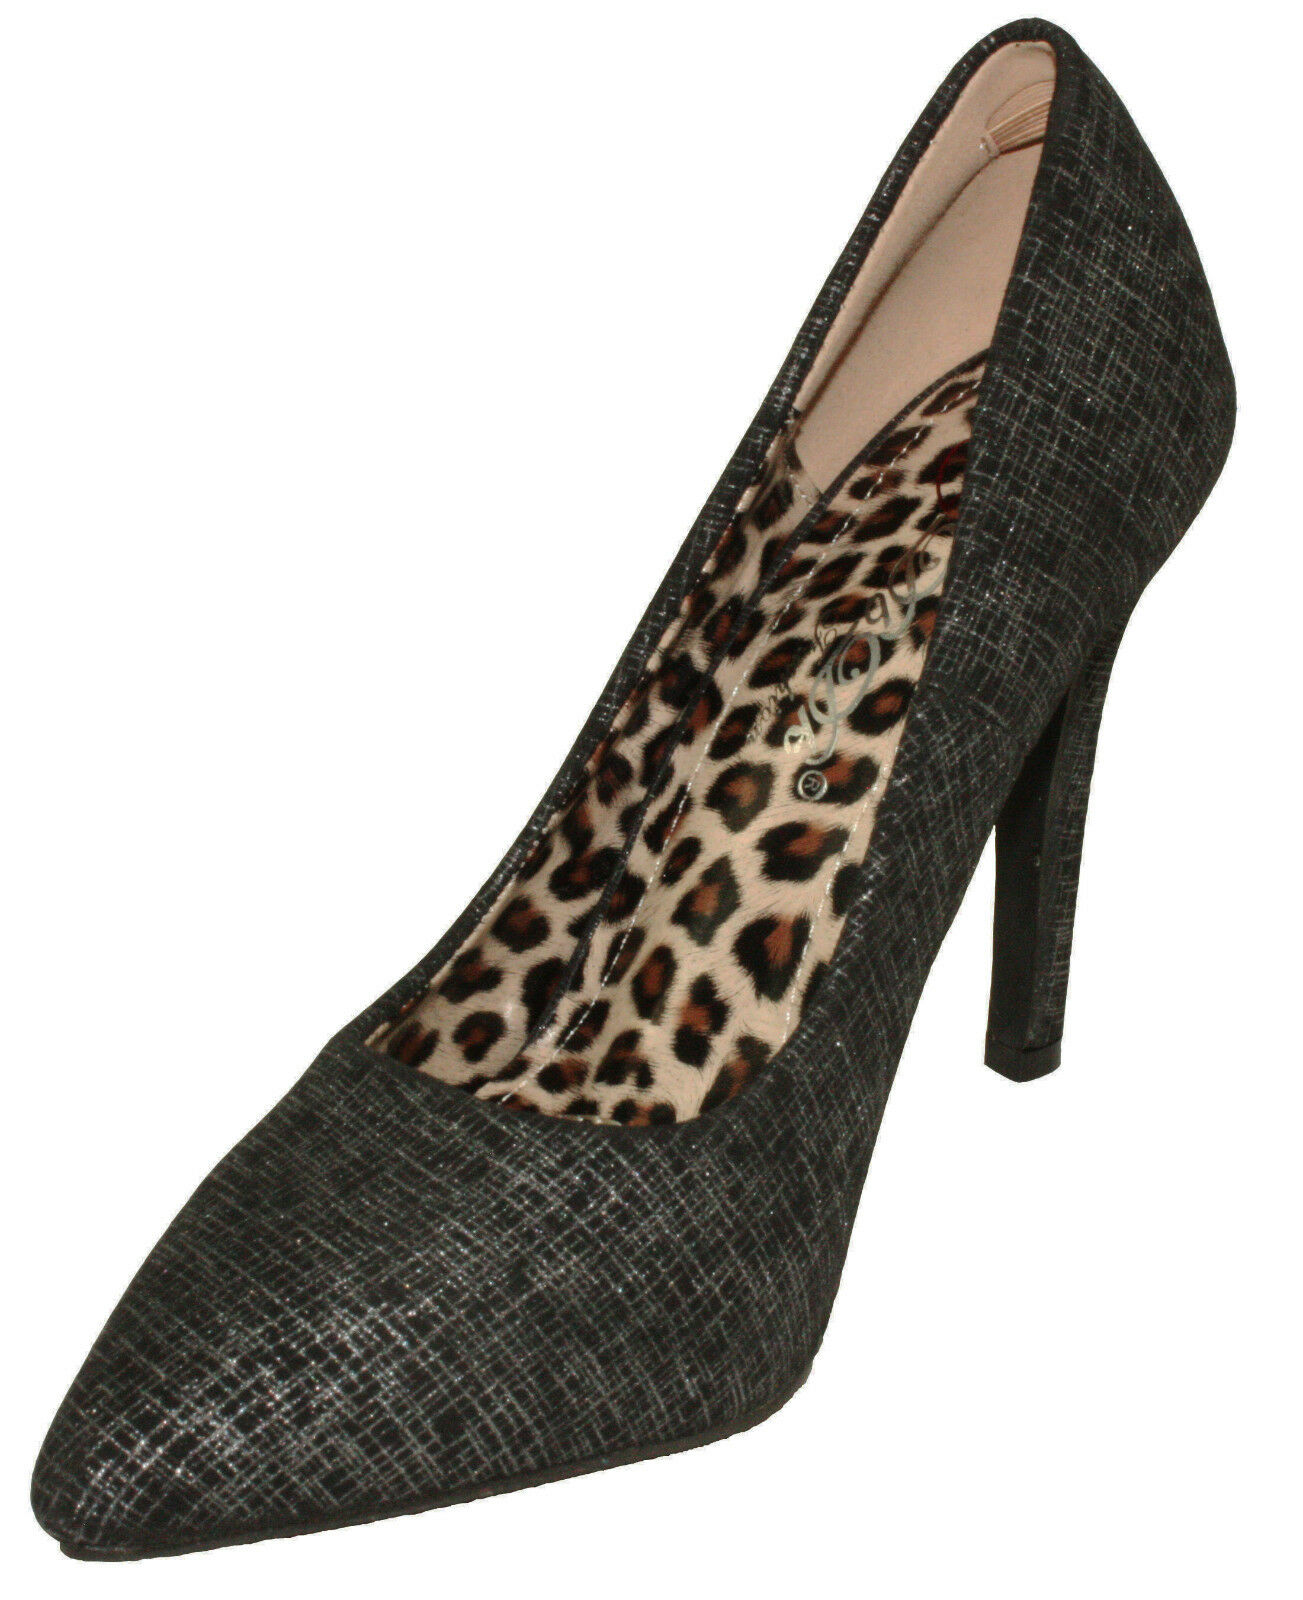 DbDk Women's Chenel-1 Pointed Pumps toe High Heel Dress Pumps Pointed 6a0a53